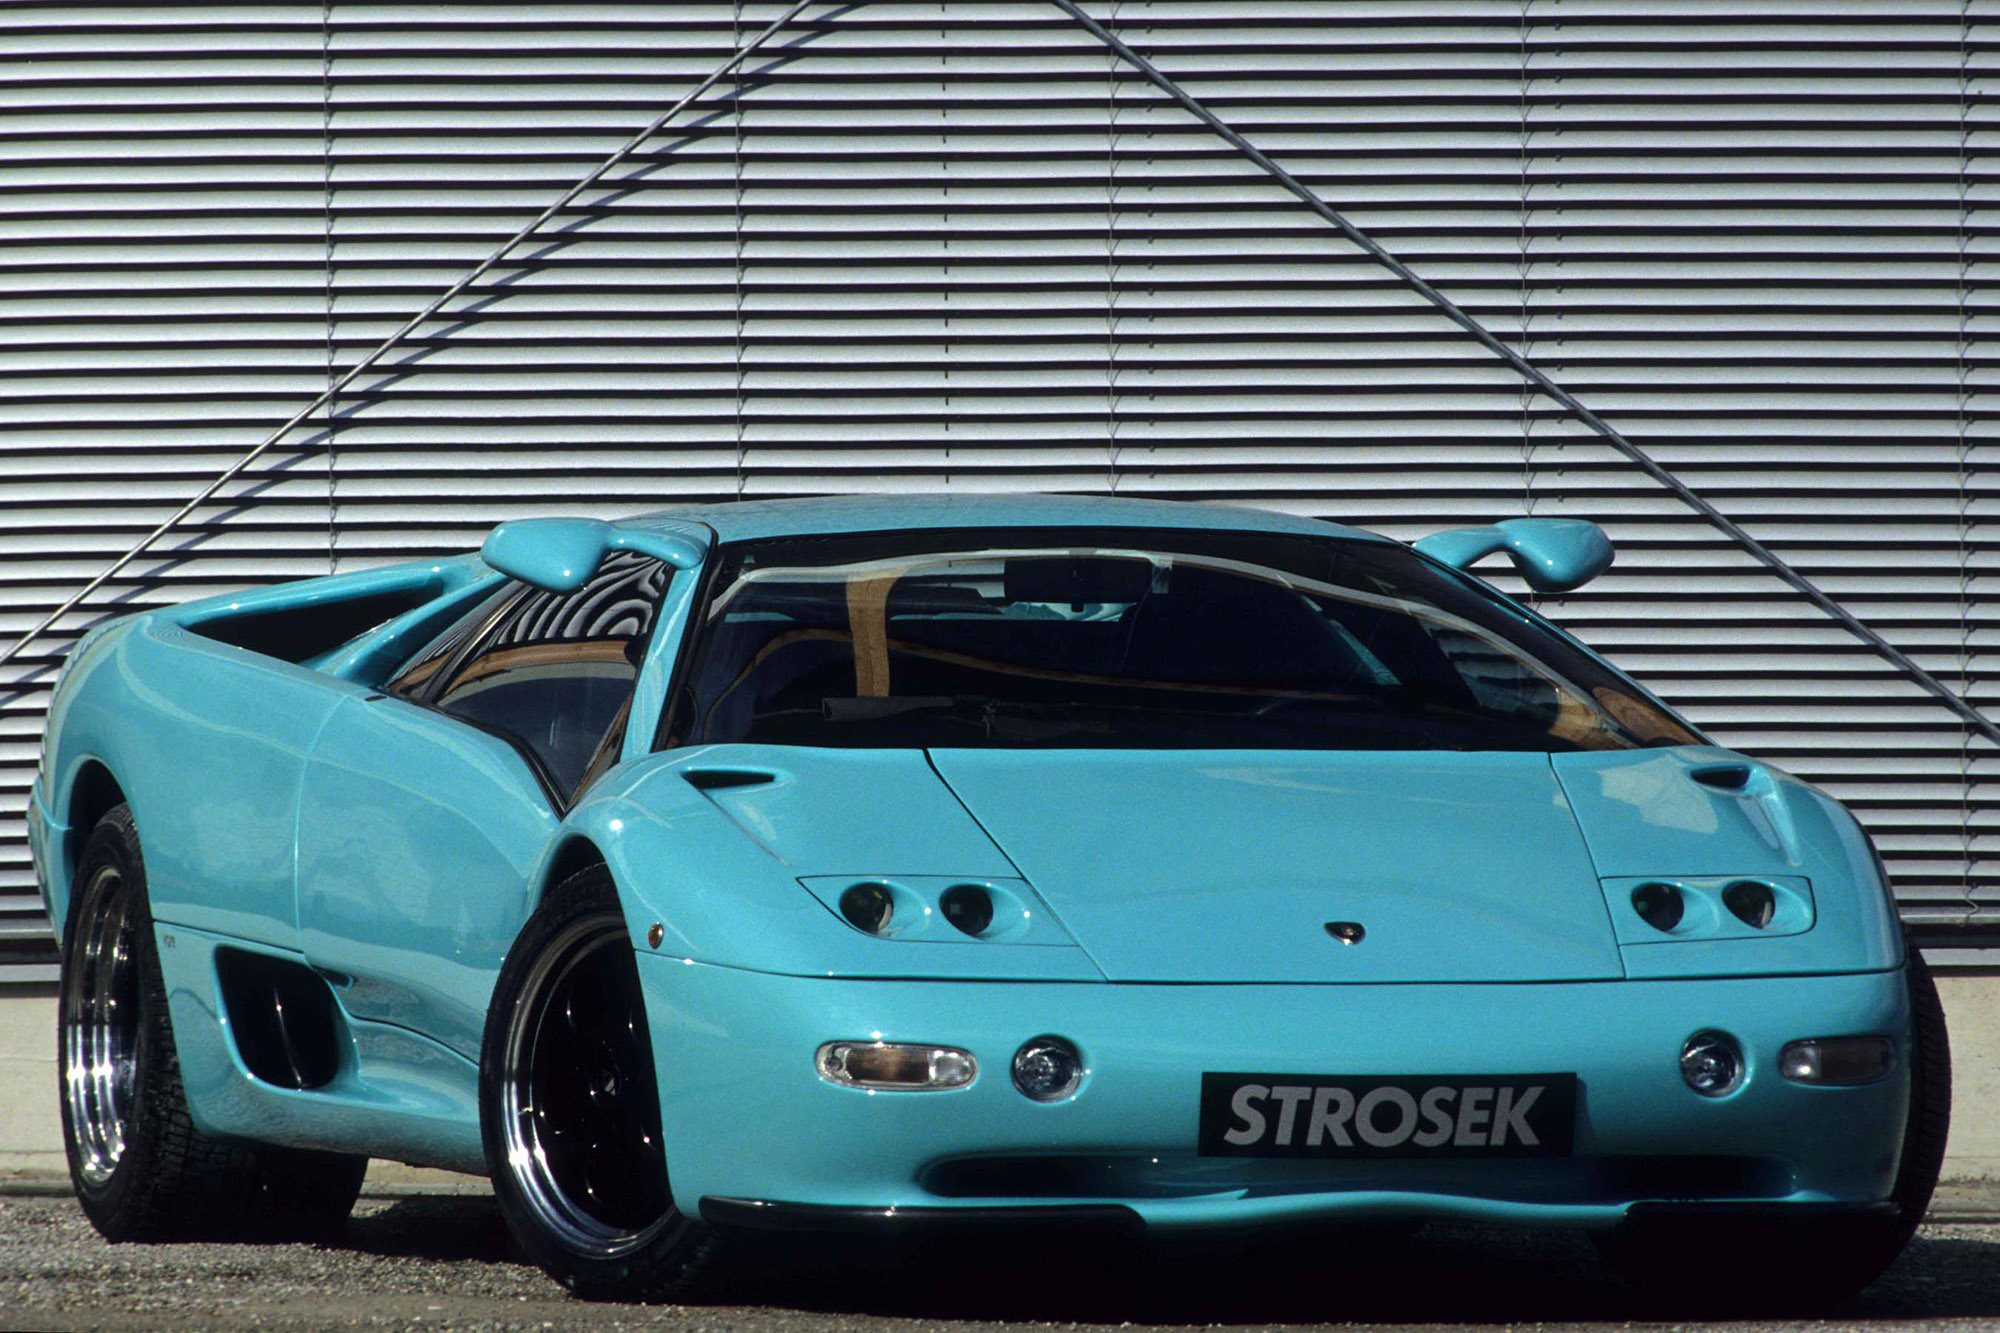 Strosek Lamborghini Diablo photo 42929